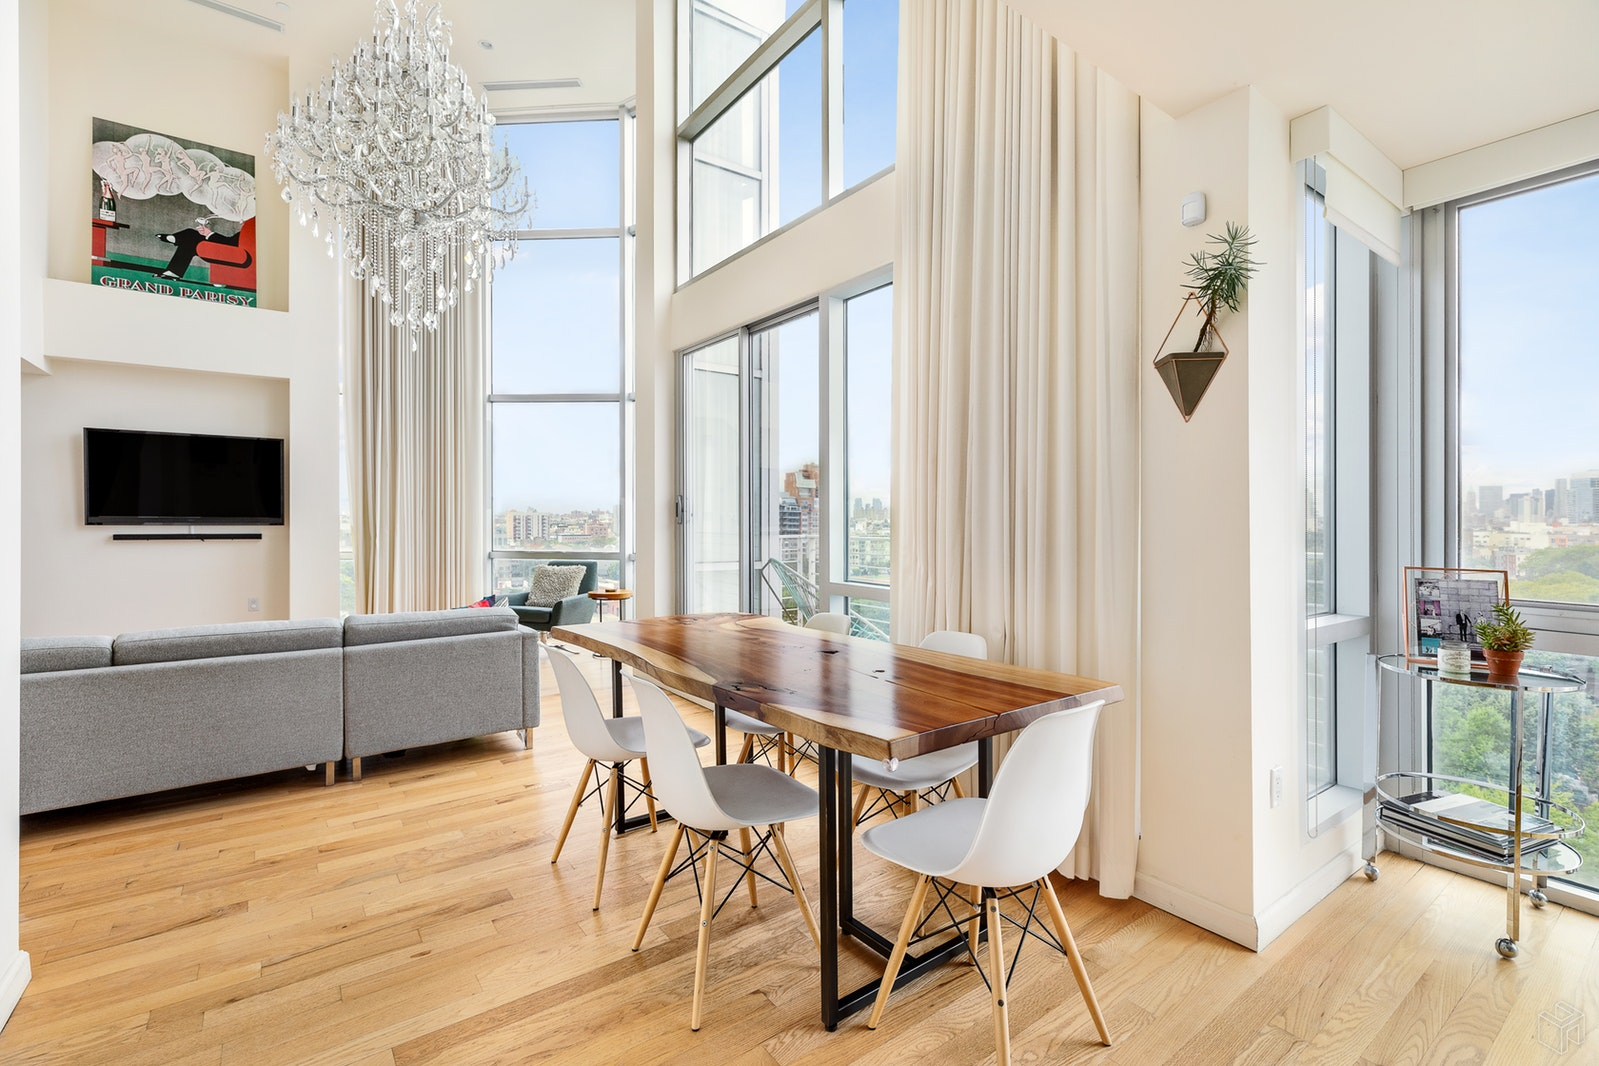 524 MANHATTAN AVENUE 8A, Greenpoint, $1,999,000, Web #: 19079487